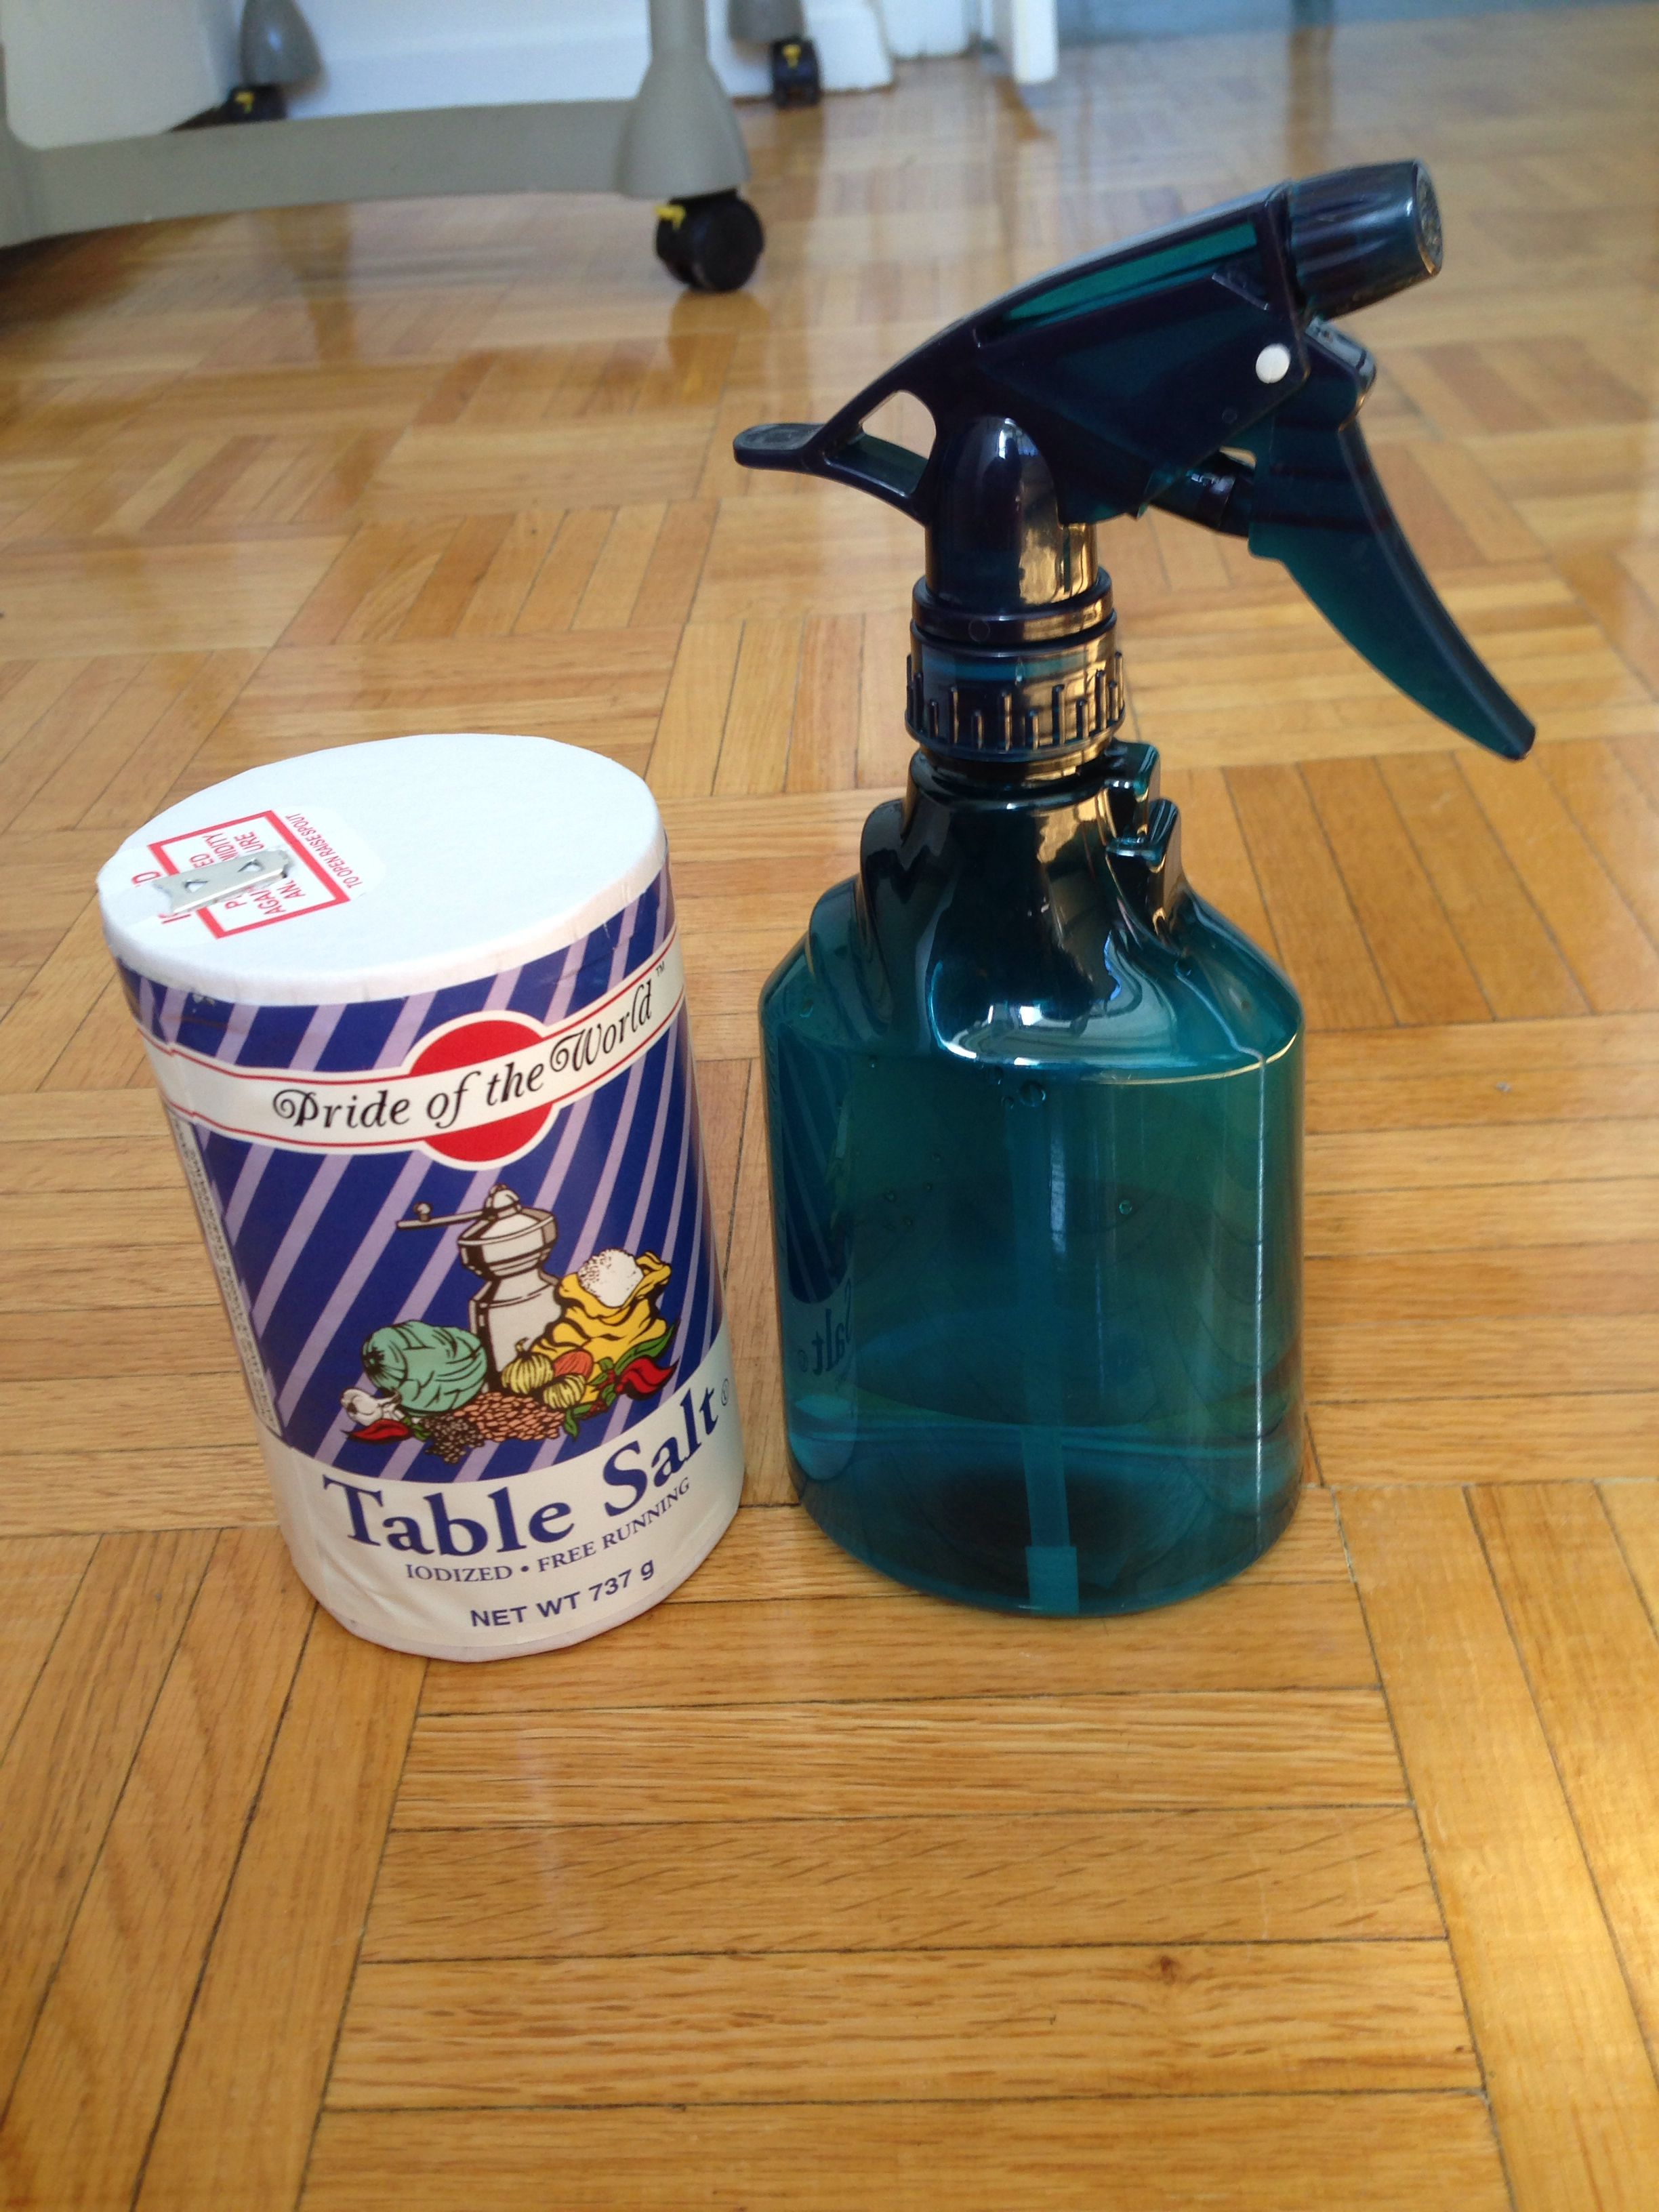 Fast way to tan any iodized sea salt spray bottle and